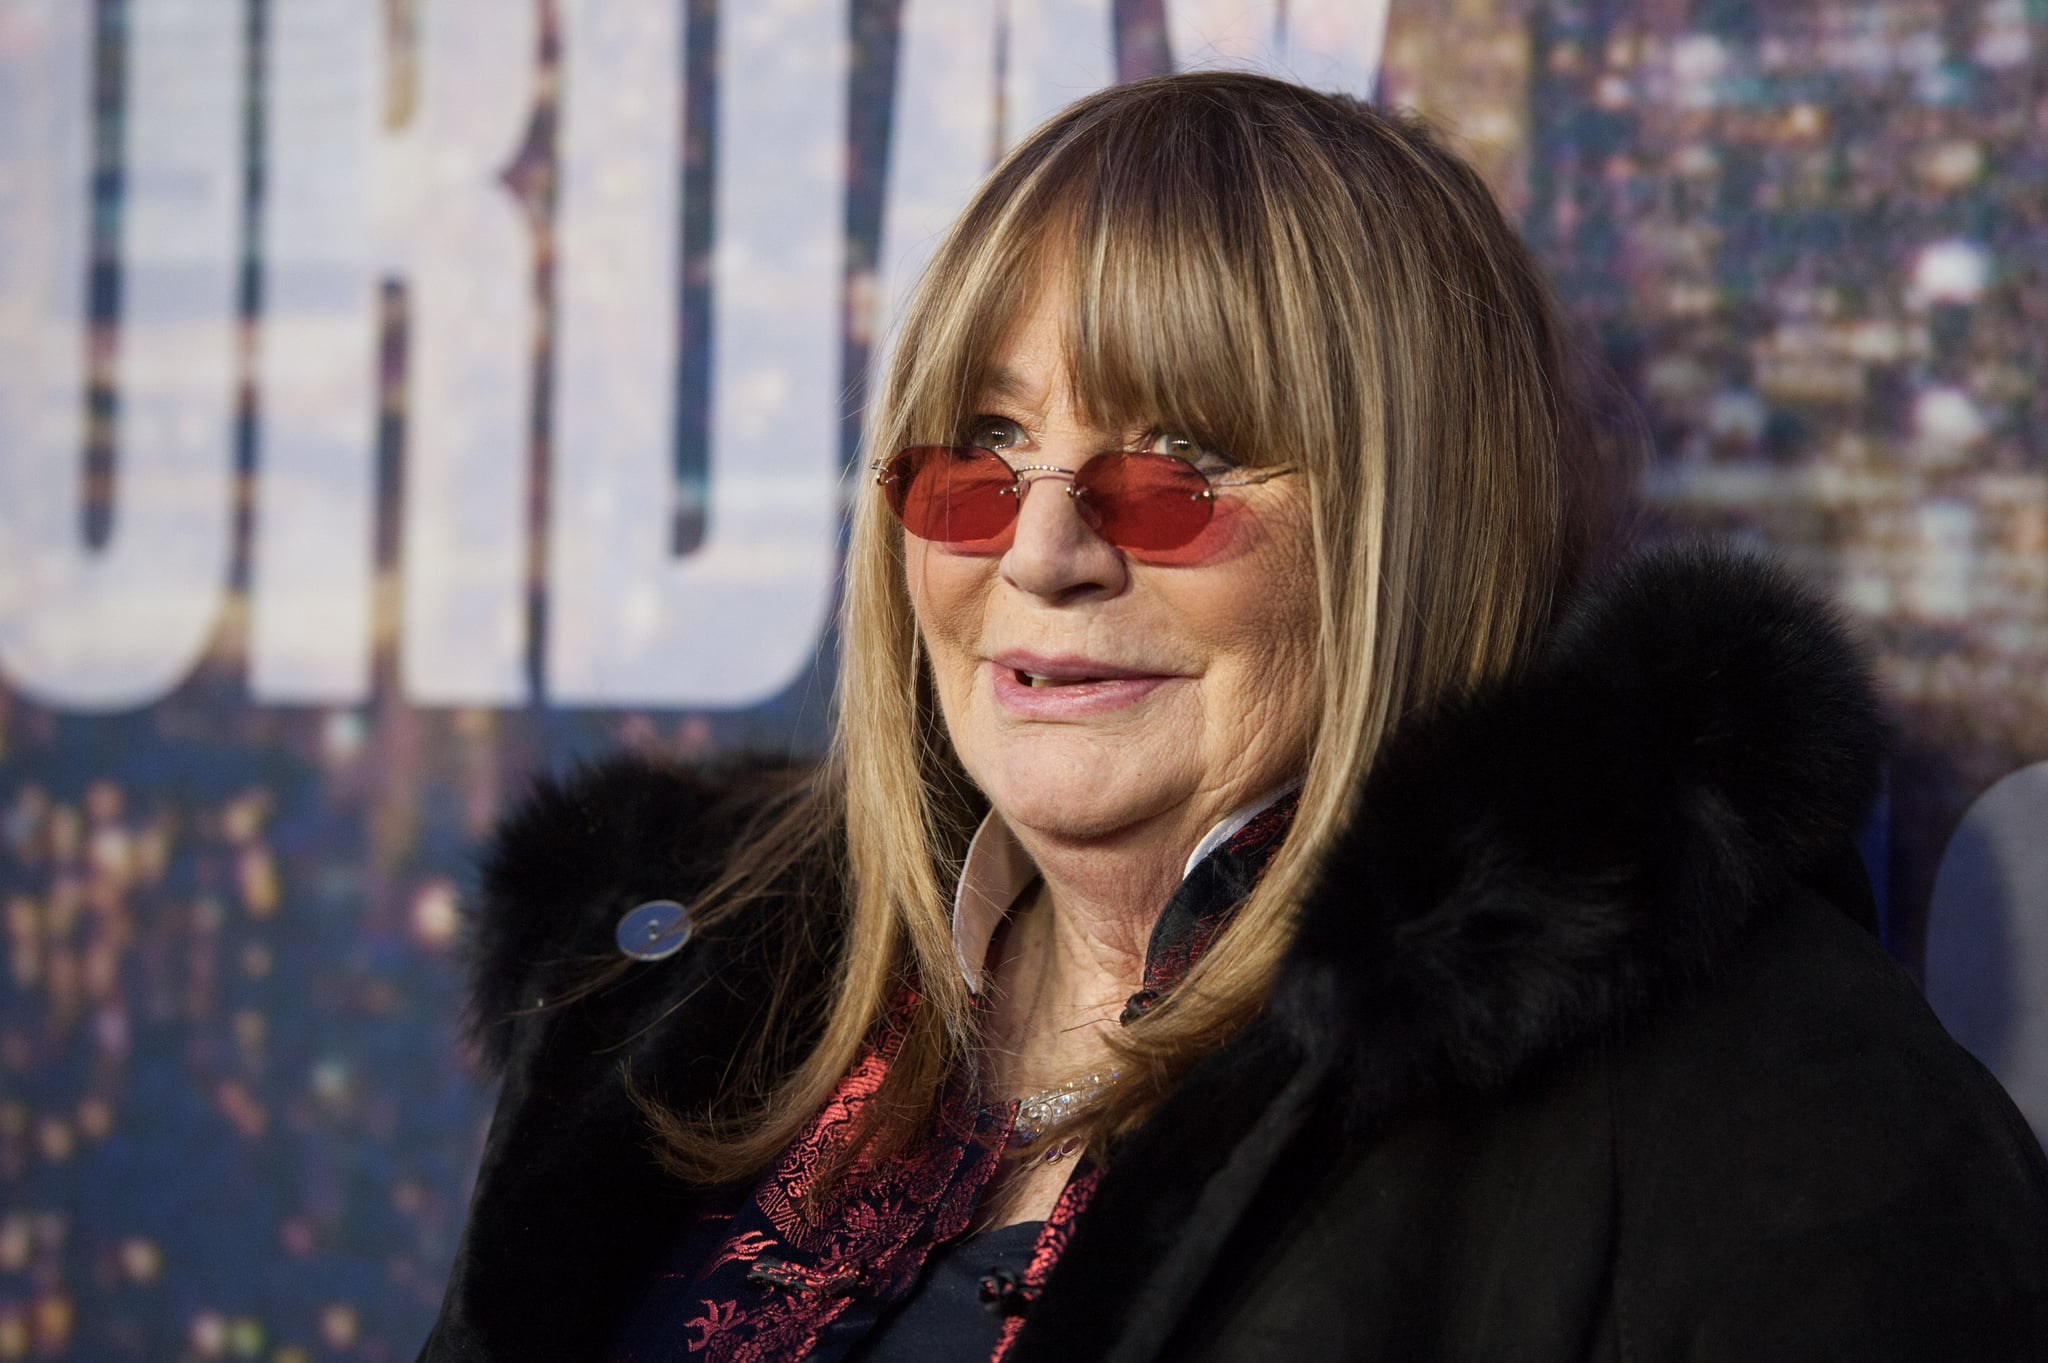 NEW YORK, NY - FEBRUARY 15:  Penny Marshall attends the SNL 40th Anniversary Celebration at Rockefeller Plaza on February 15, 2015 in New York City.  (Photo by D Dipasupil/FilmMagic)